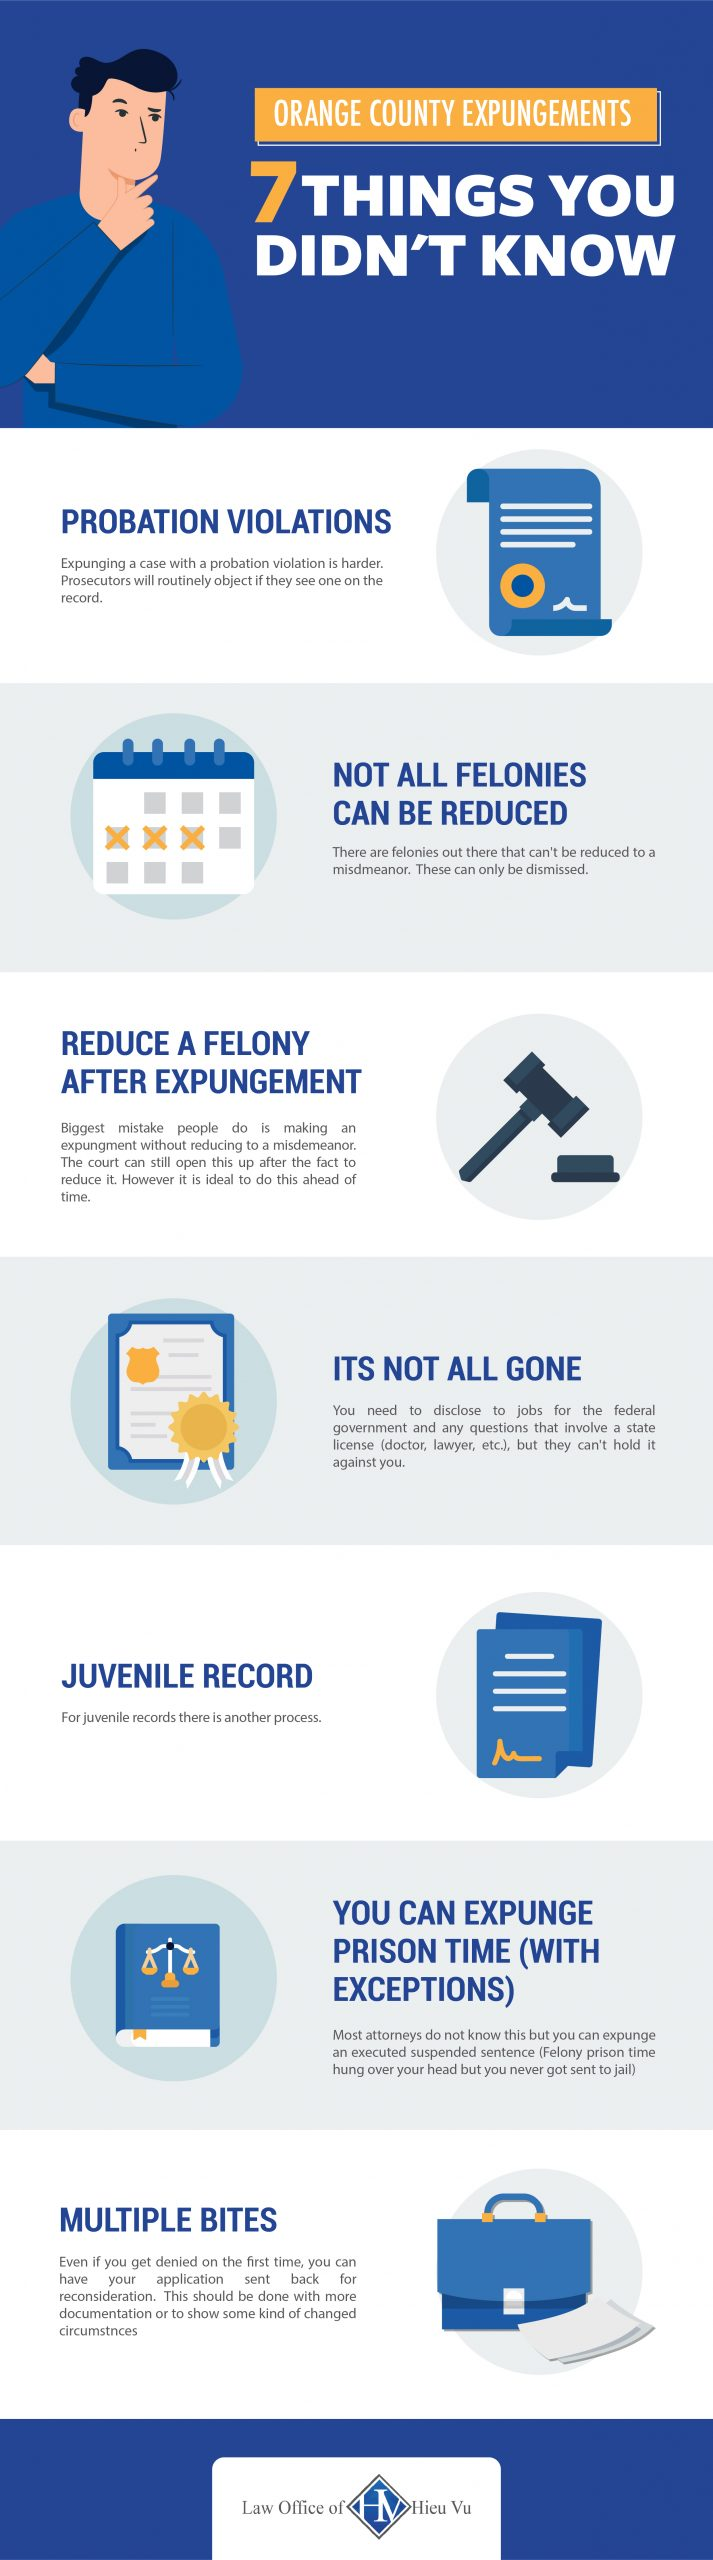 Shows infographic with 7 different facts about expungement